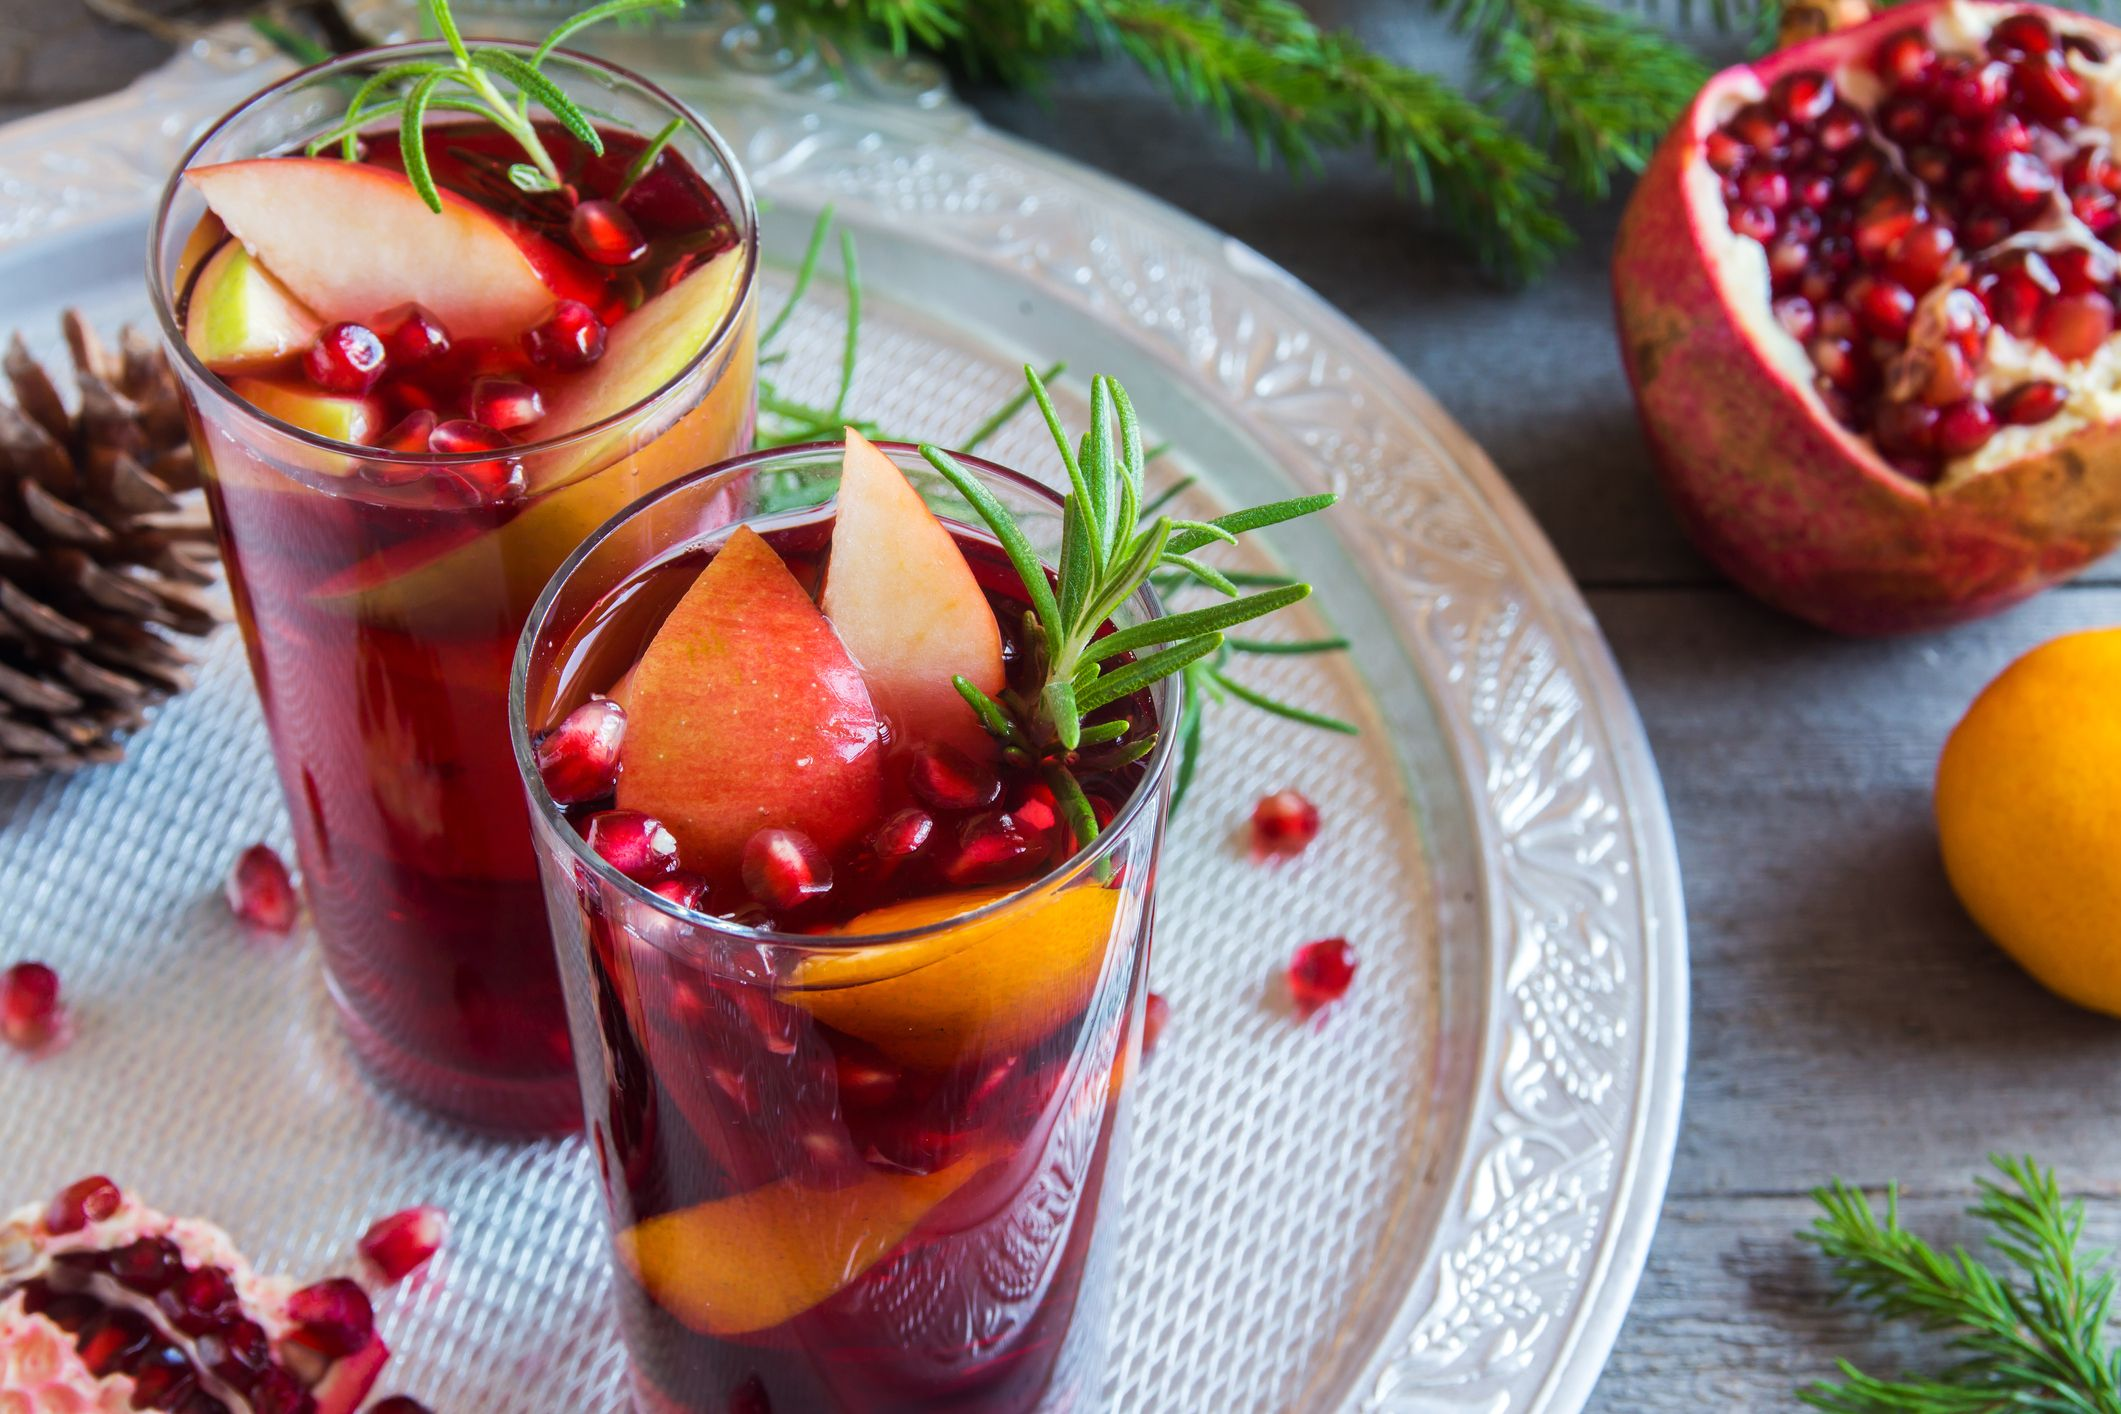 10 Best Non Alcoholic Christmas Drinks to Serve at Your Holiday Party